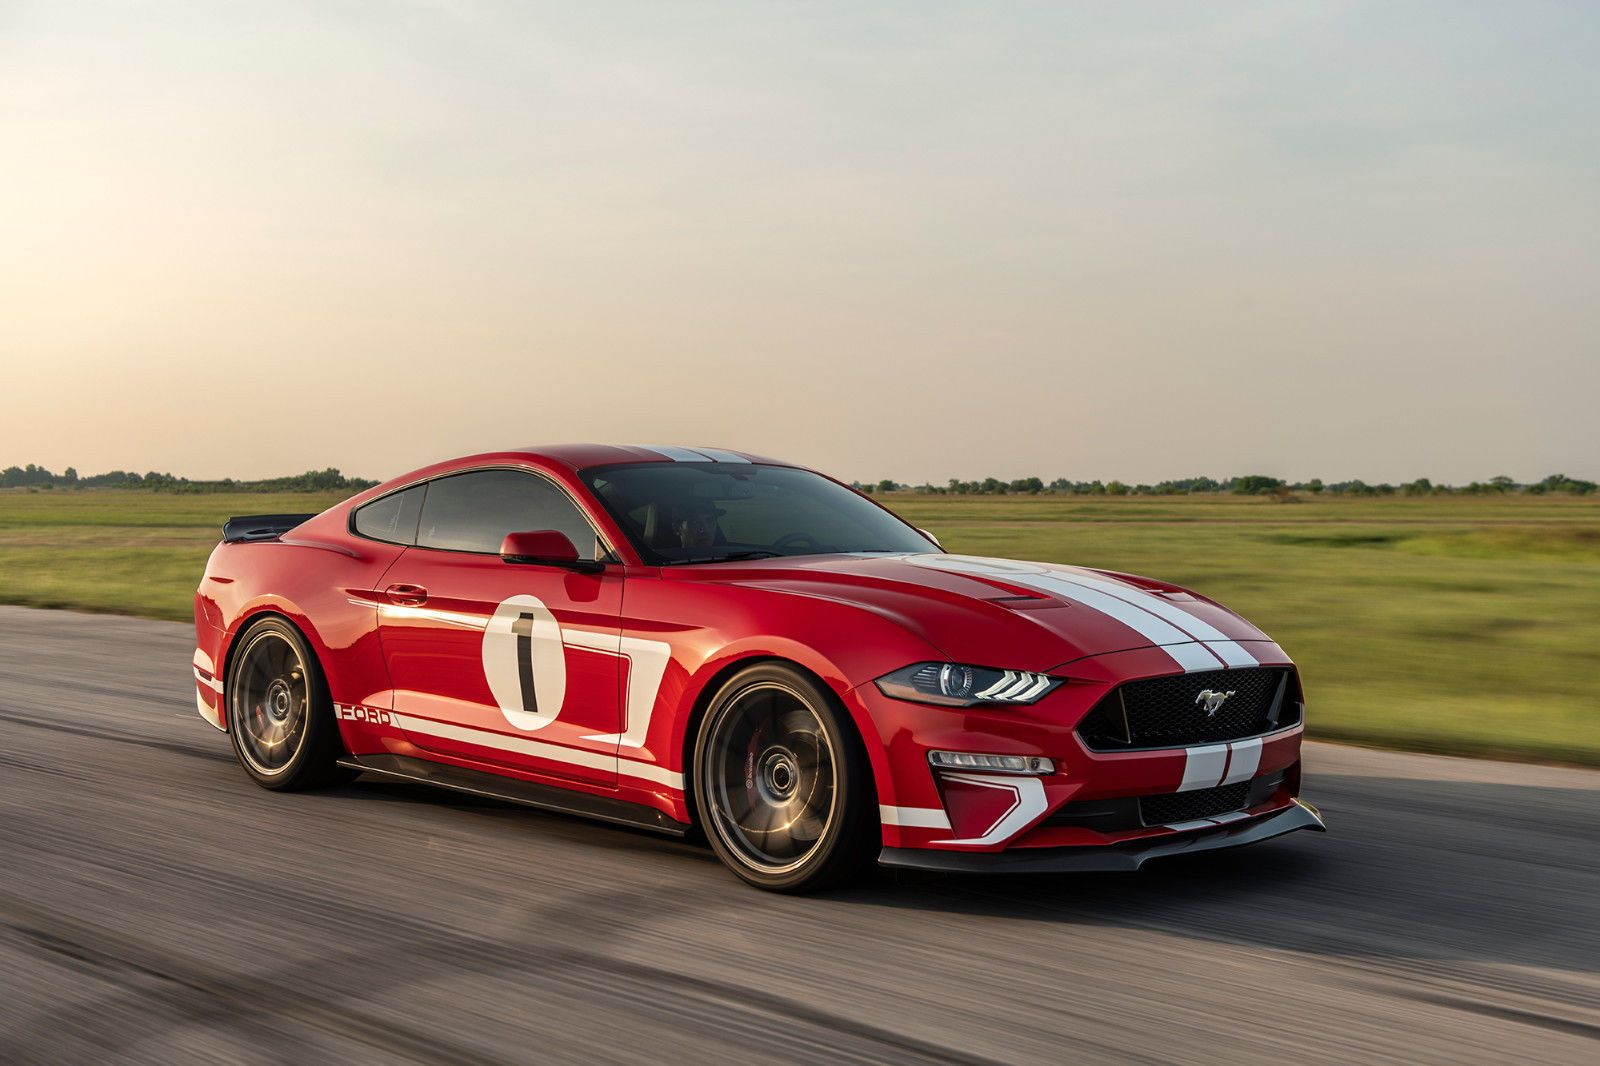 2018 Ford Mustang Gt 800 Hp Hennessey Heritage Edition Mustang Gt Faster Than Shelby Roush Saleen 119 500 00 119 Ford Mustang Gt Mustang Tuning Hennessey